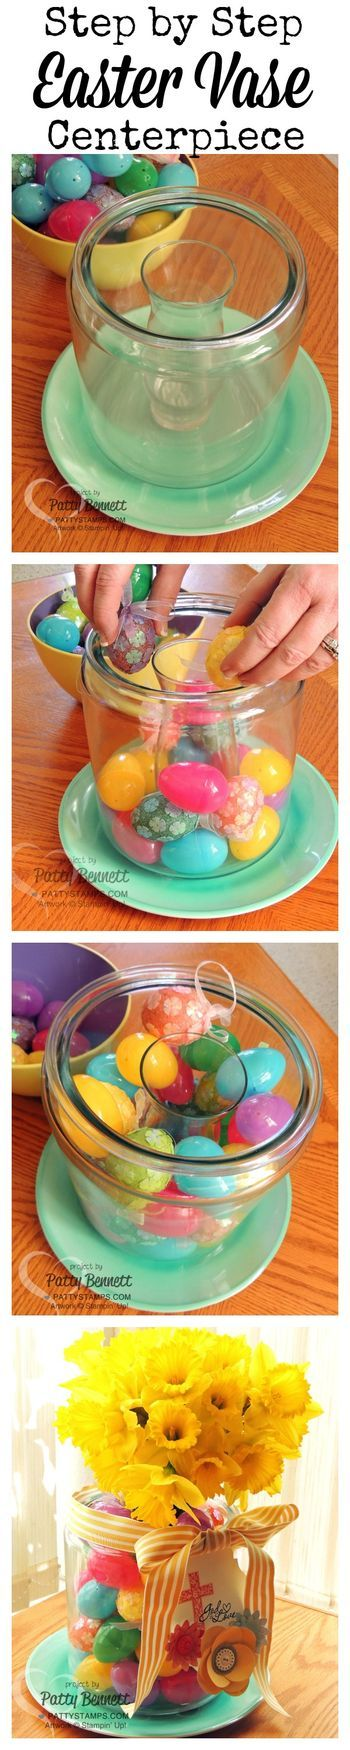 How To: Easter Egg Vase Centerpiece for all those extra plastic eggs!  Get extra vases at the Dollar Store for a great deal!  by Patty Bennett www.PattyStamps.com